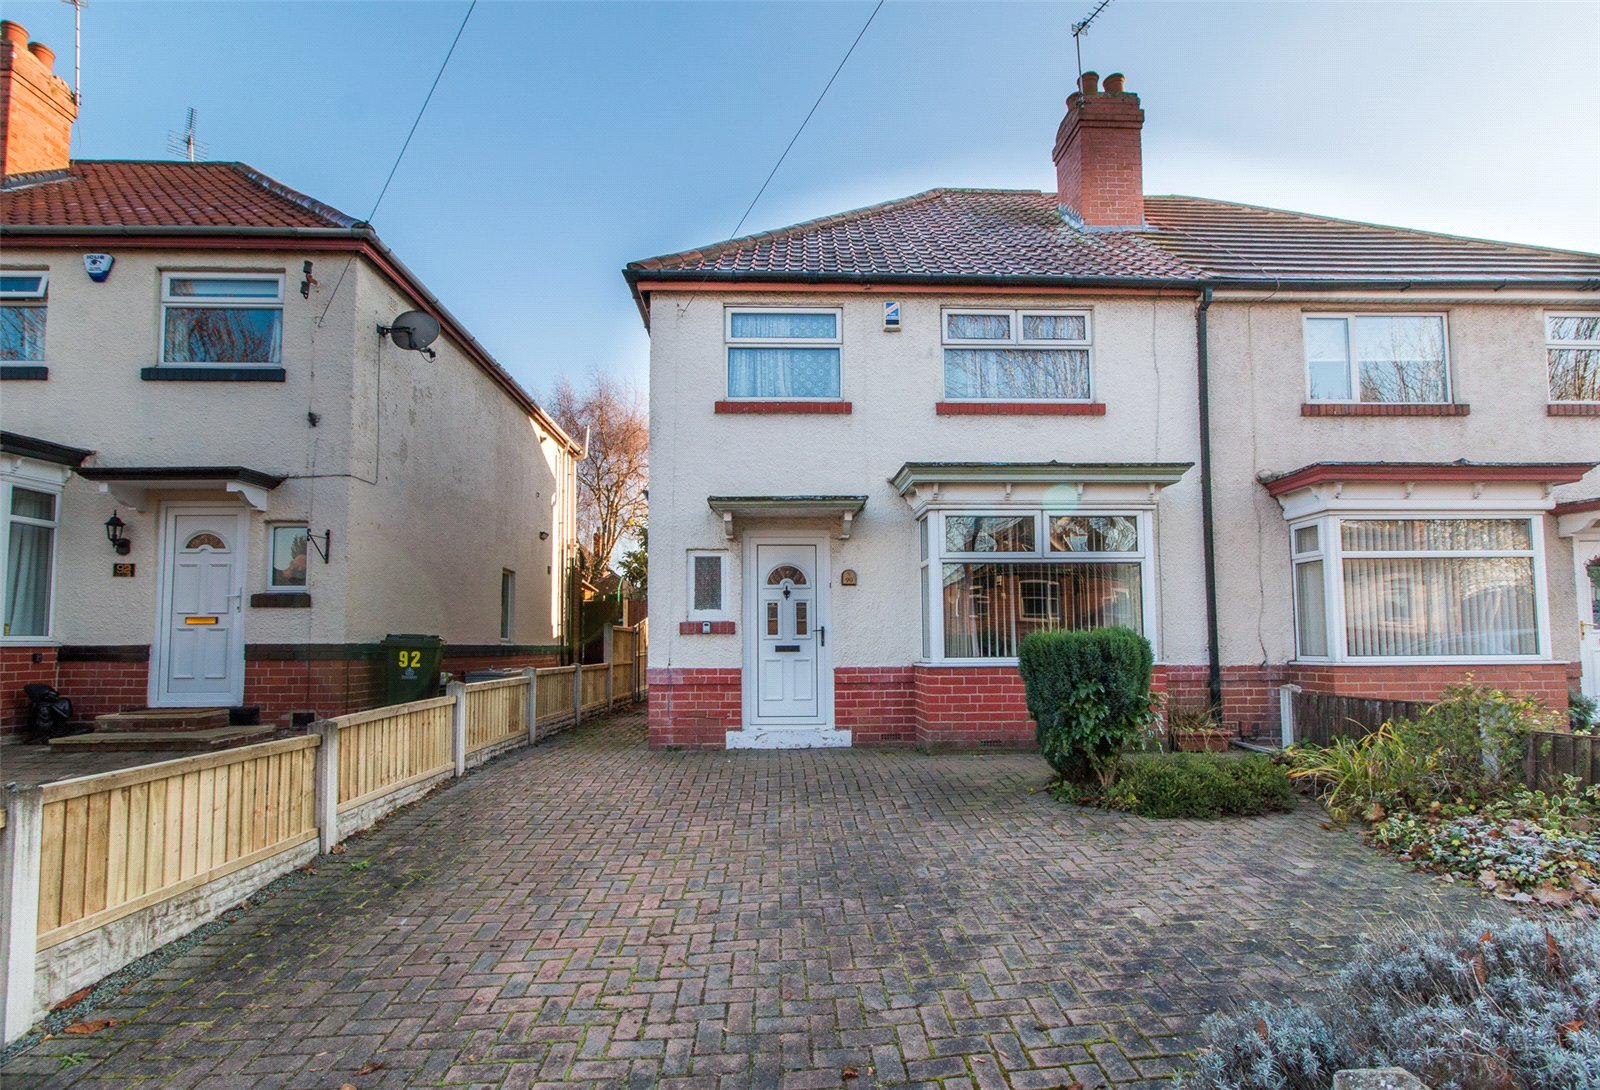 Whitegates Doncaster 3 Bedroom House For Sale In The Grove